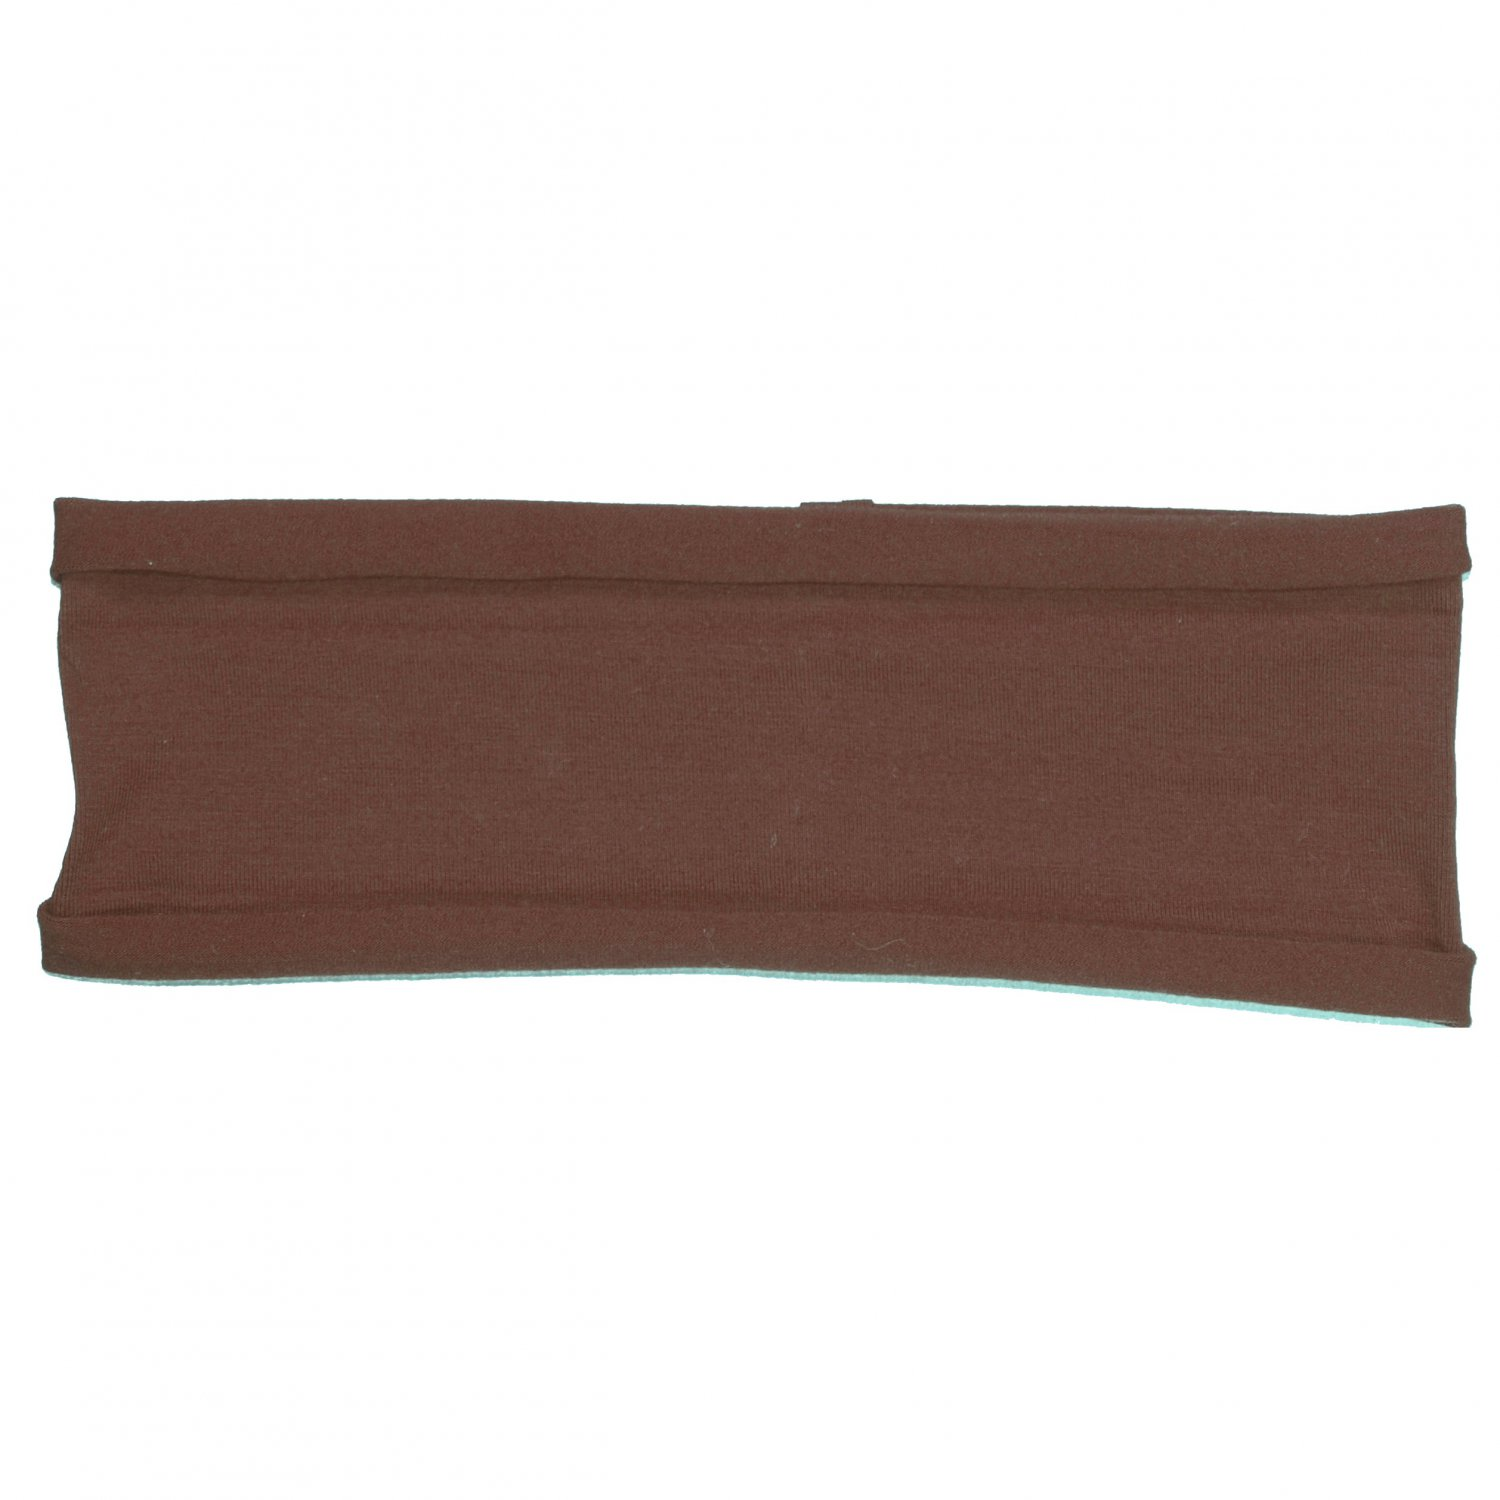 Brown stretchy headband for yoga, pilates, exercise, sports, sweatband or any activities